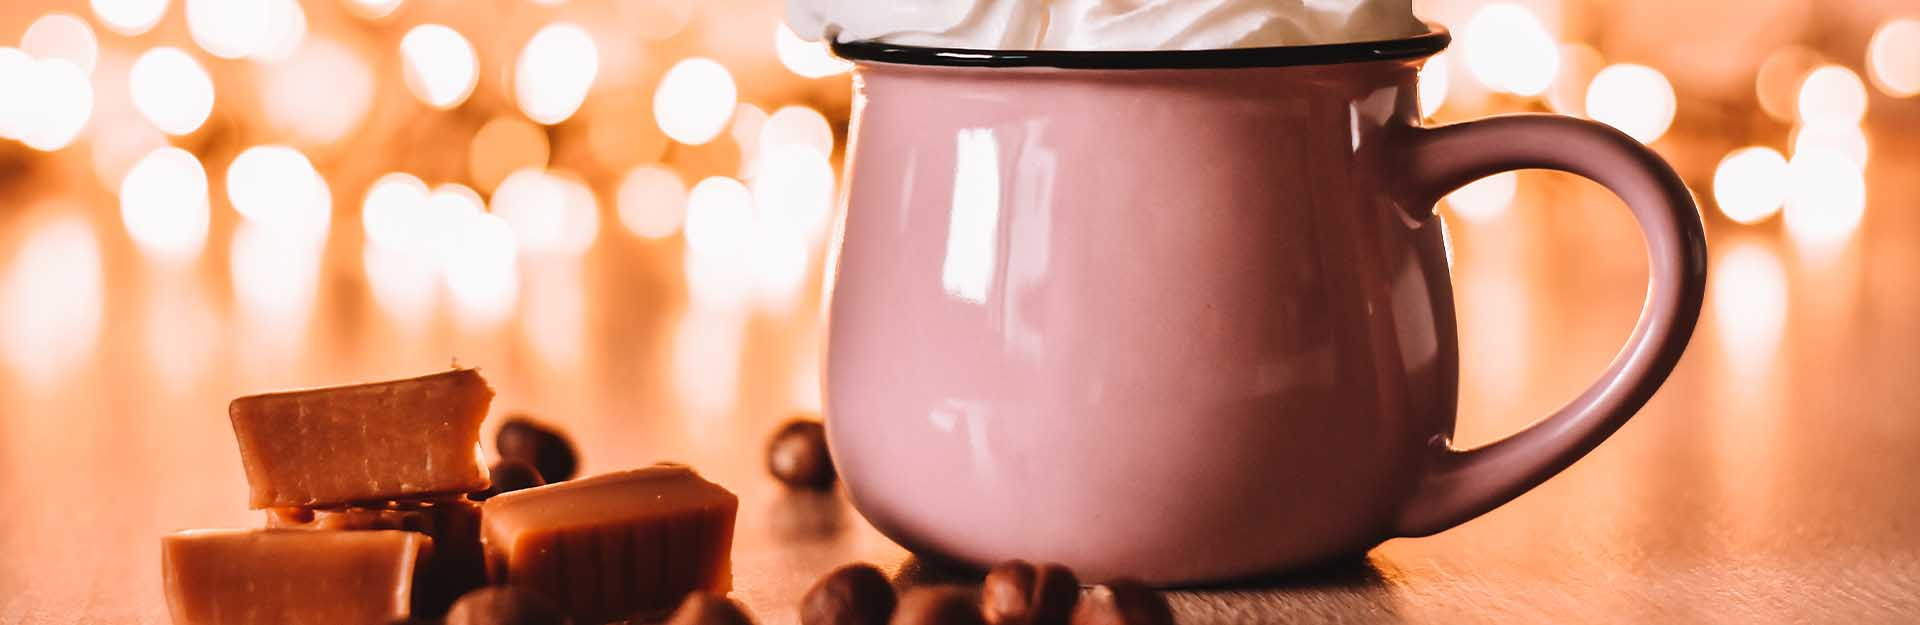 A pink mug of hot chocolate sitting next to cubes of caramel.